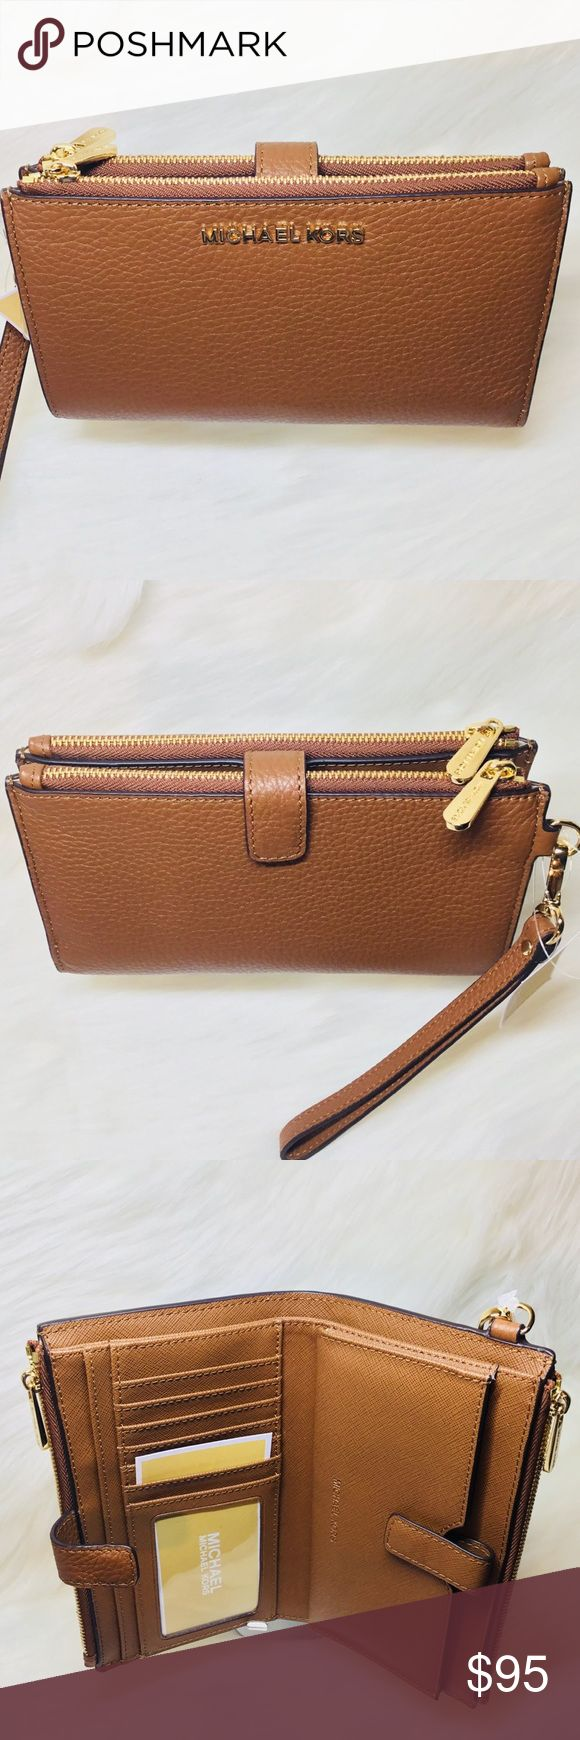 Michael Michael Kors Adele Double-Zip Oyster. From MICHAEL Michael Kors, the Adele wristlet features:small-pebble leathergold-tone hardware2 zip compartments; 1 snap compartmentphone pocket, 2 slit pockets, 6 card slots and ID window insideapprox. MICHAEL Michael Kors Bags Clutches & Wristlets